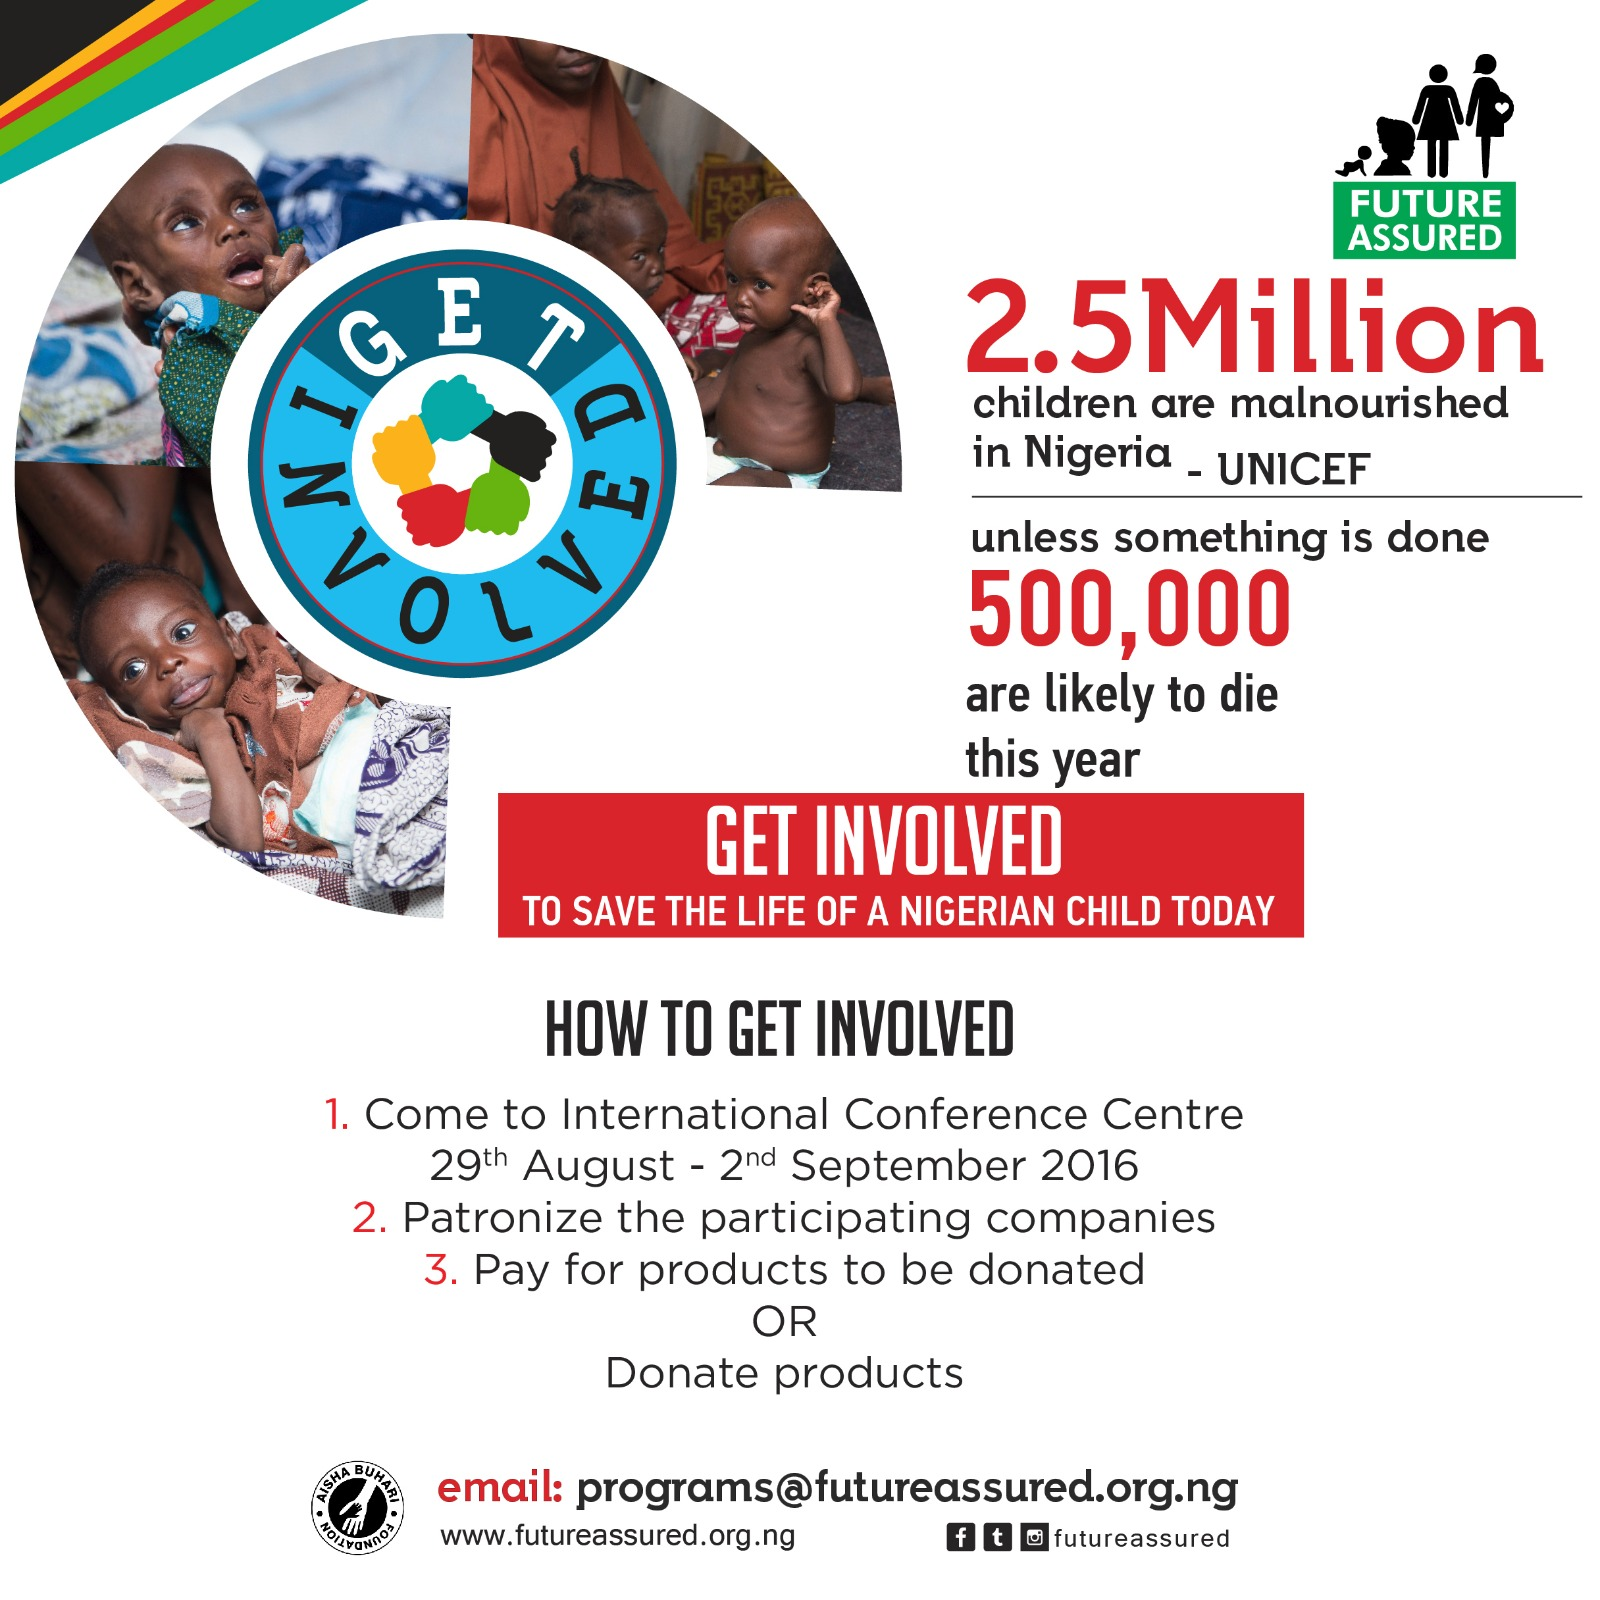 """First Lady, Aisha Buhari Set to Launch Her """"Get Involved Initiative"""" for Malnourished Children"""